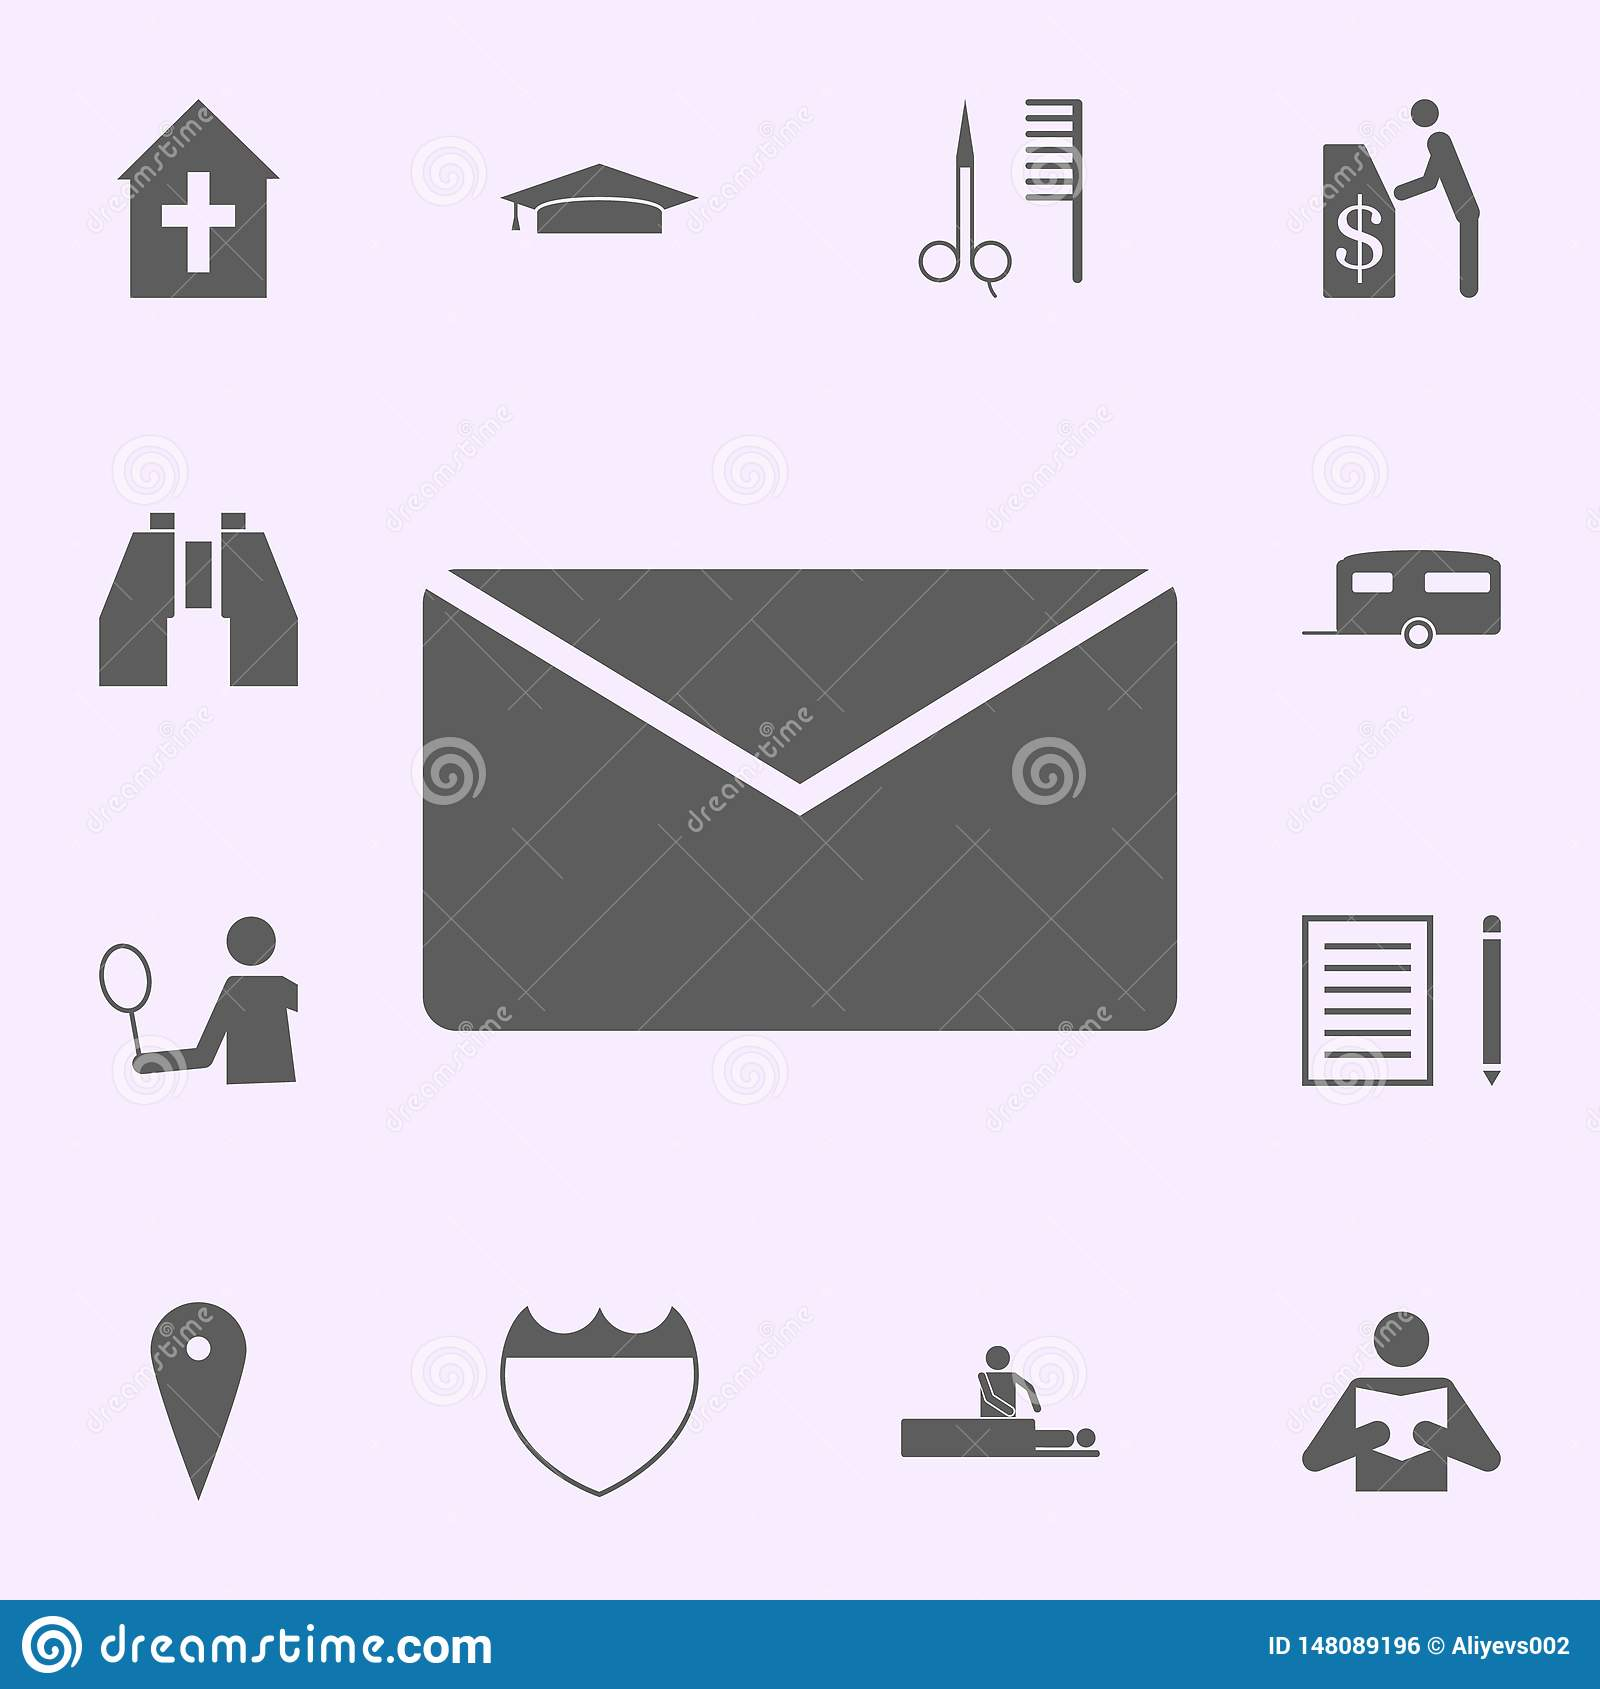 place of mail icon. signs of pins icons universal set for web and mobile